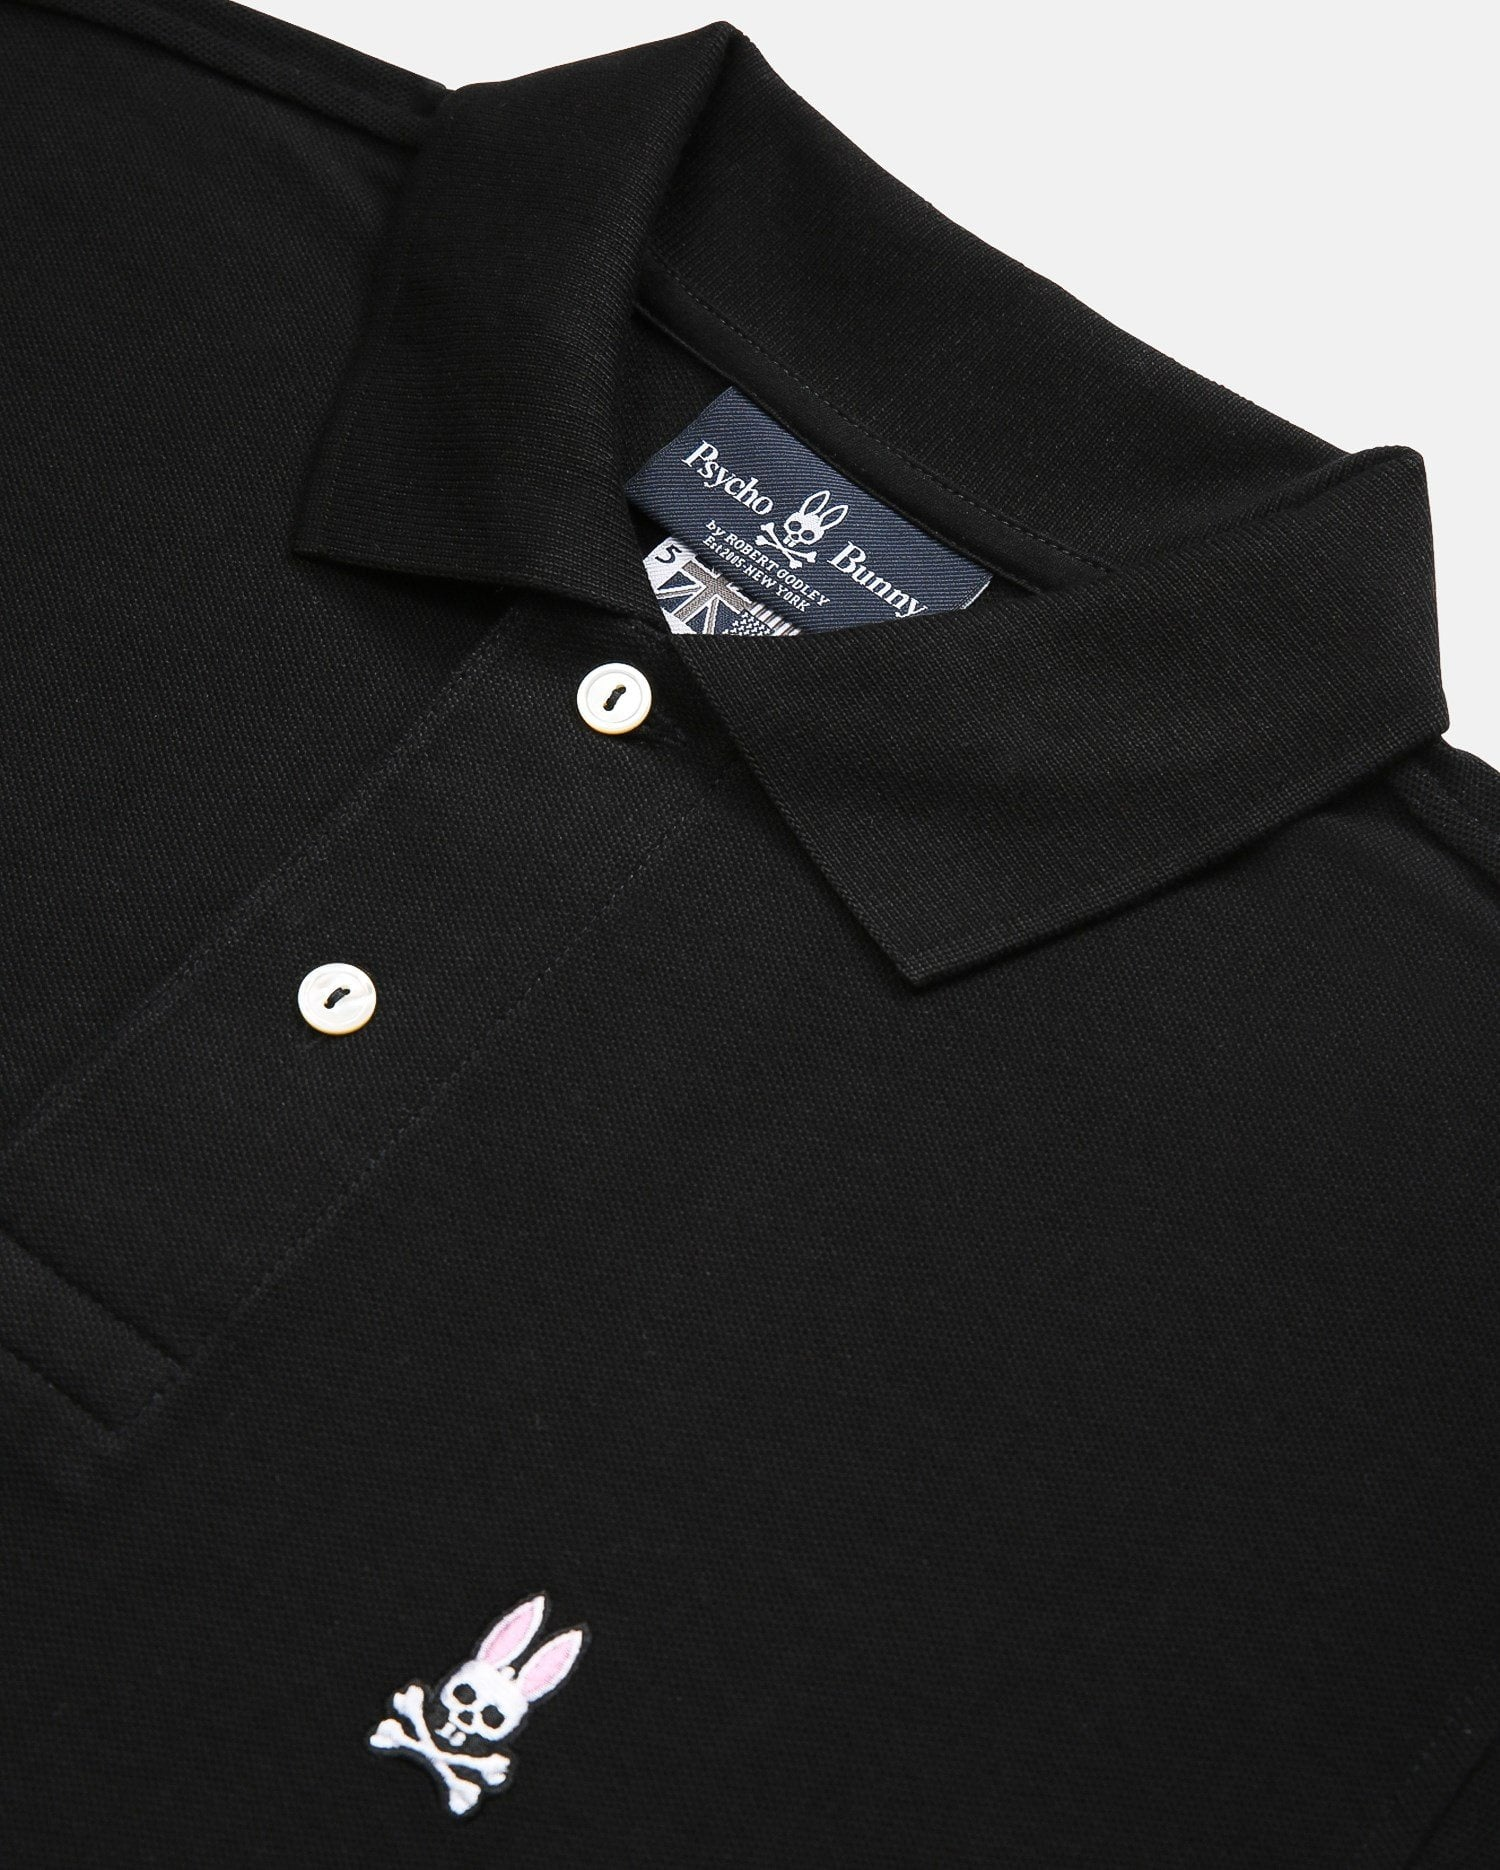 BIG AND TALL - CLASSIC POLO - B9K001ARPC - BLACK (BLK)